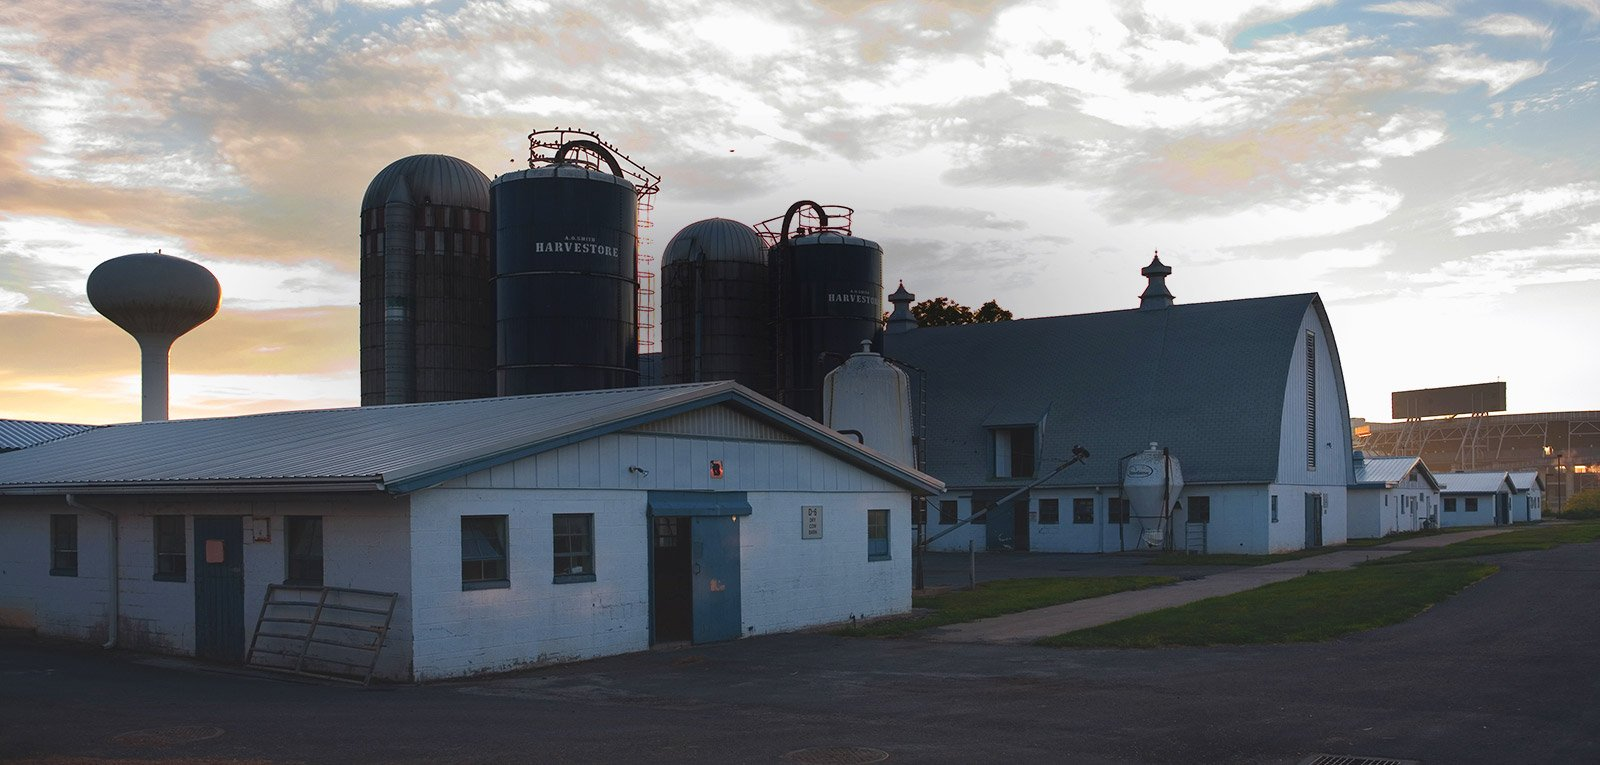 Penn State dairy barns